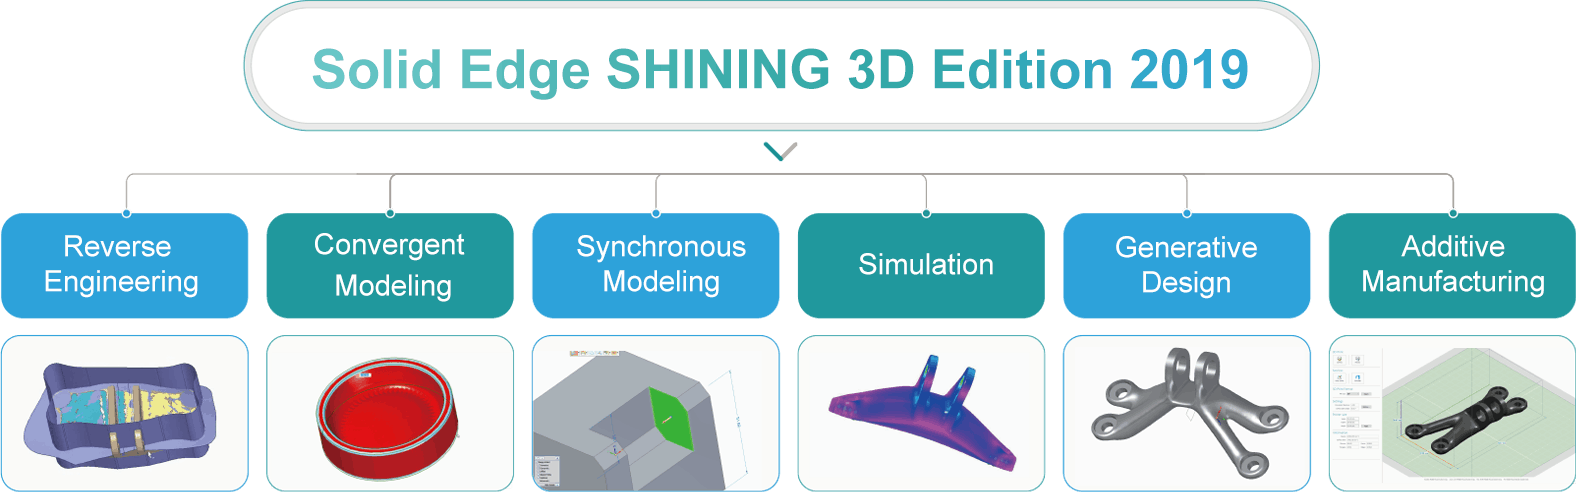 Solid Edge Shining 3D Edition